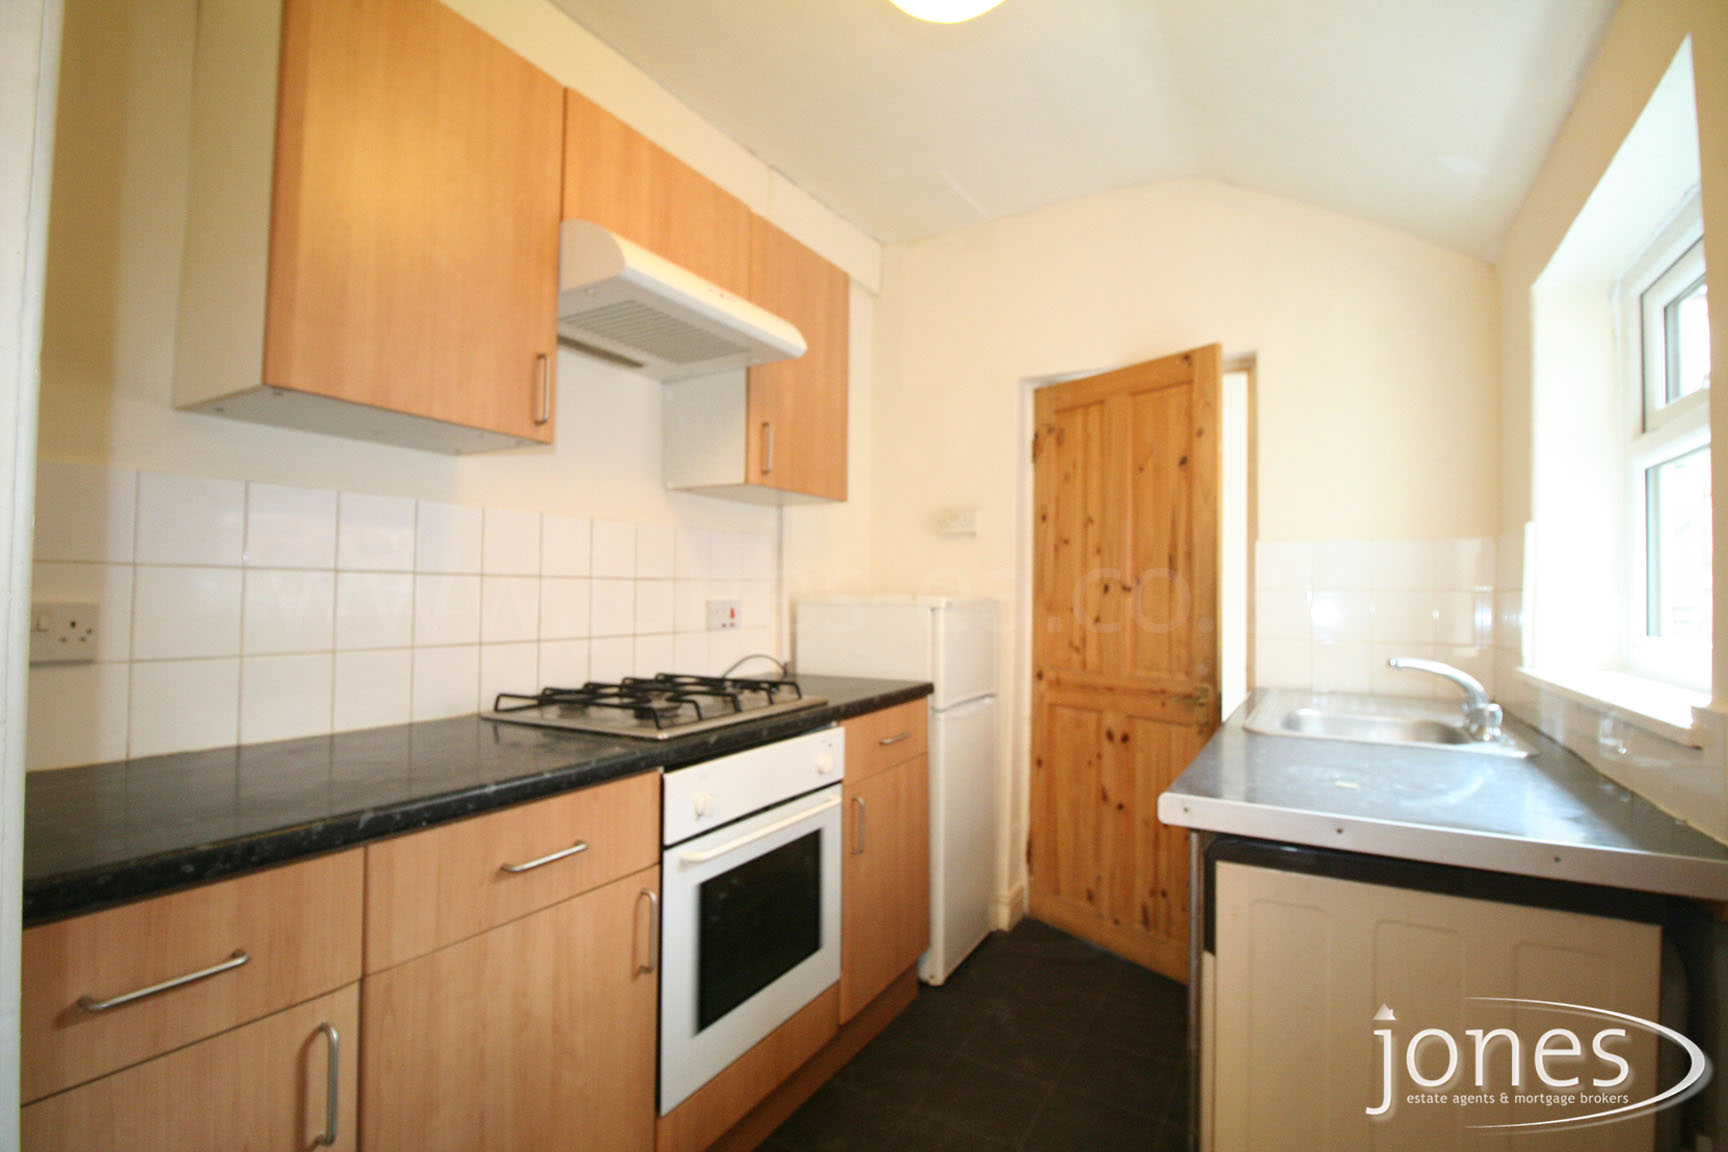 Home for Sale Let - Photo 04 Percy Street   Middlesbrough TS1 4DD